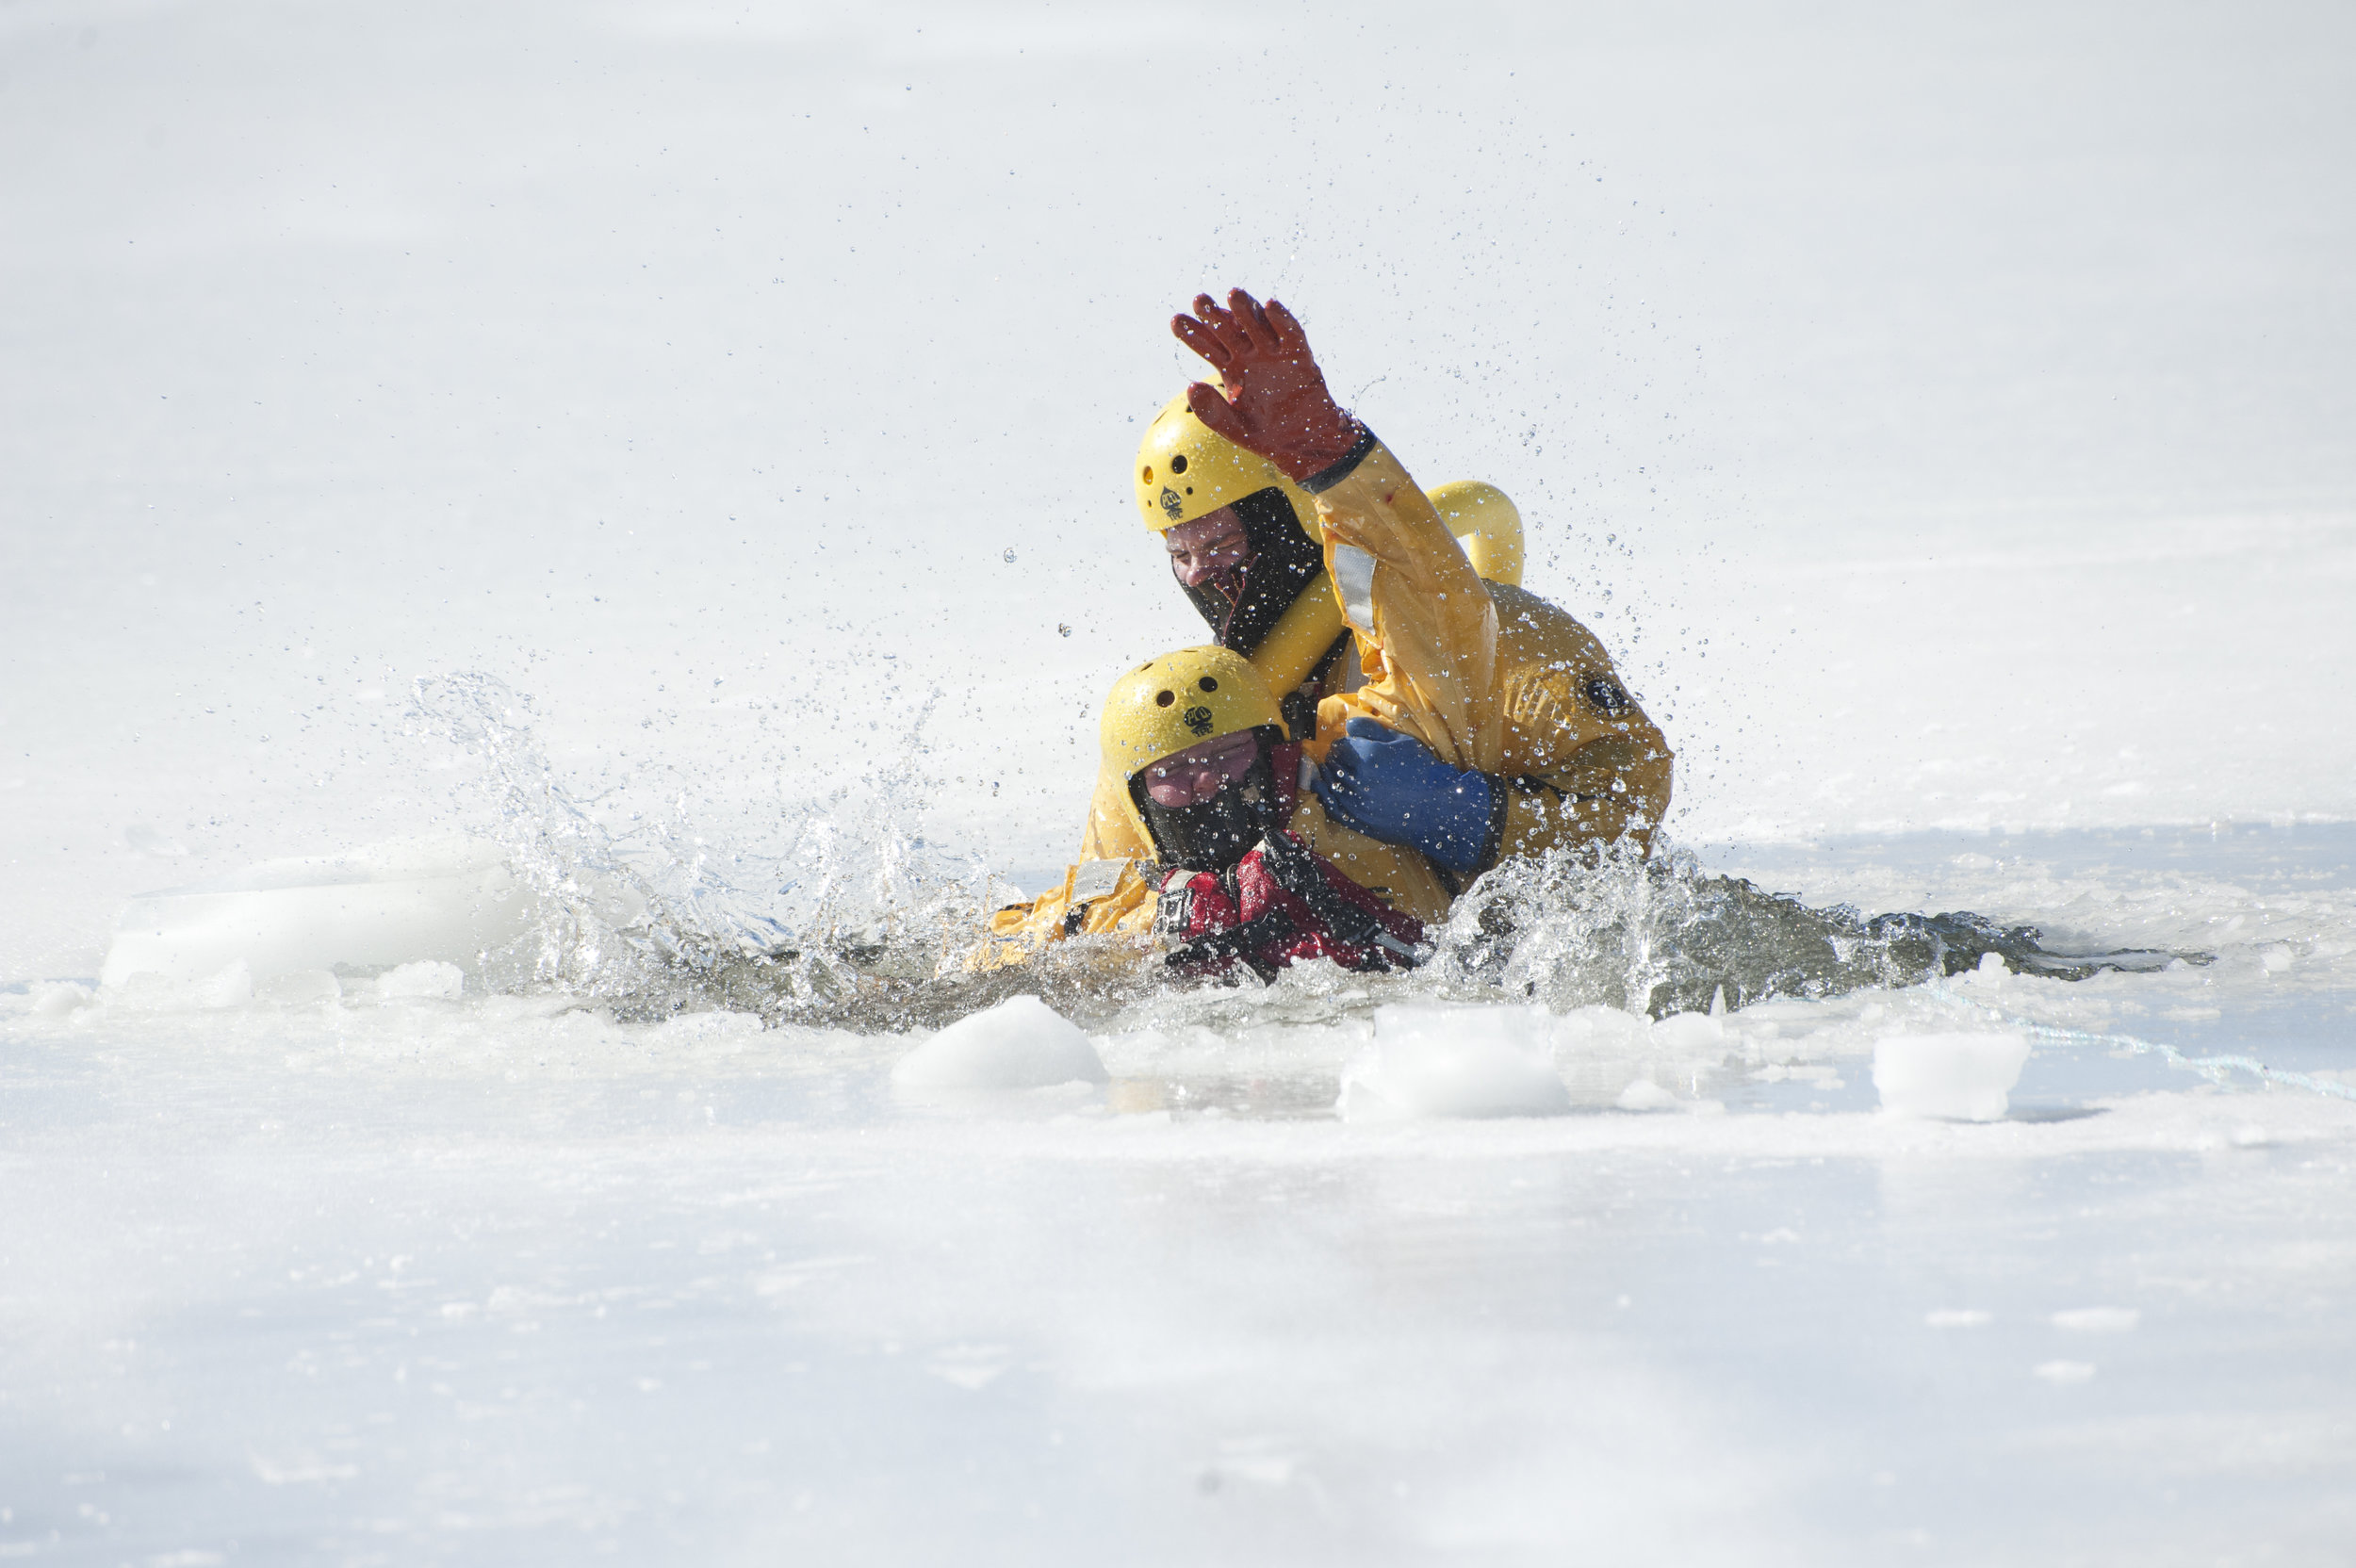 Firefighter Brittania Huether, front, struggles as a victim would, as Jordan Willis rescues her from the water during ice rescue training Jan. 27, 2017.